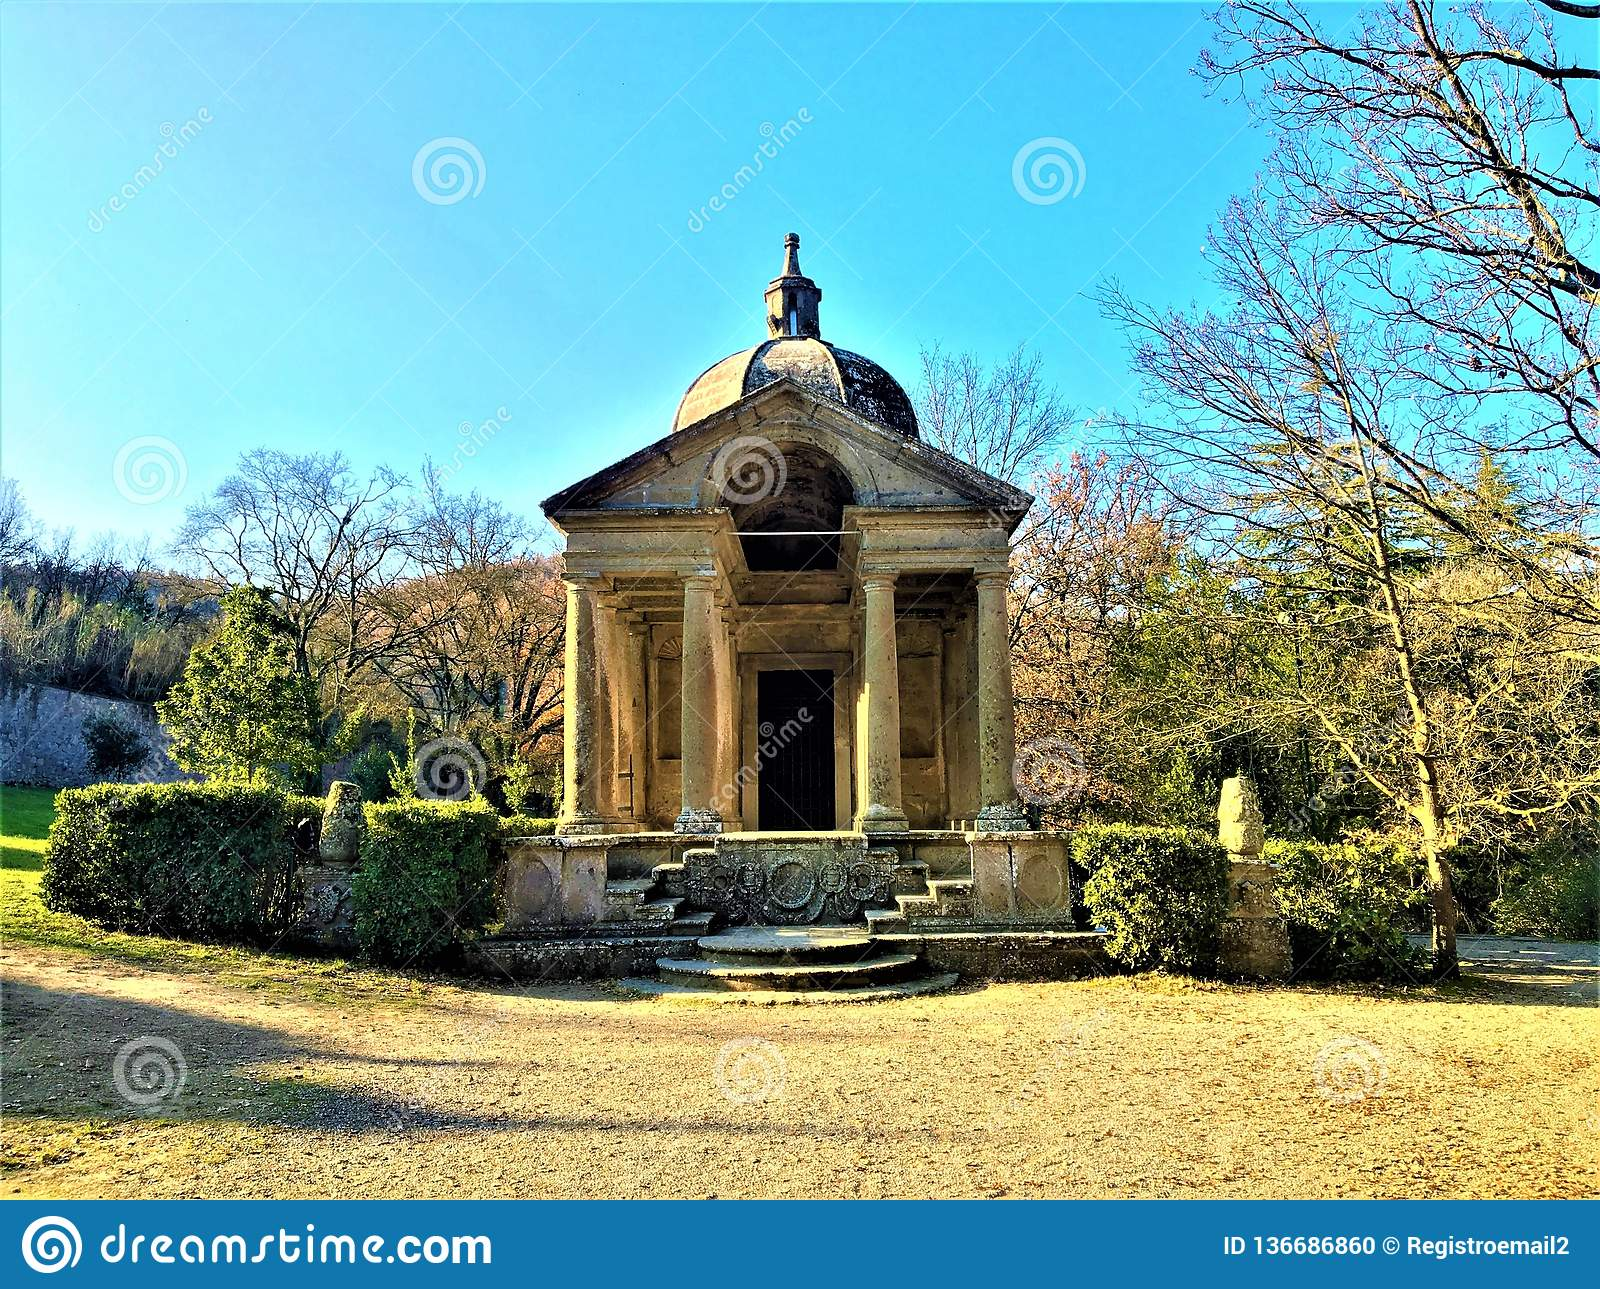 Park of the Monsters, Sacred Grove, Garden of Bomarzo. Temple of Eternity and alchemy